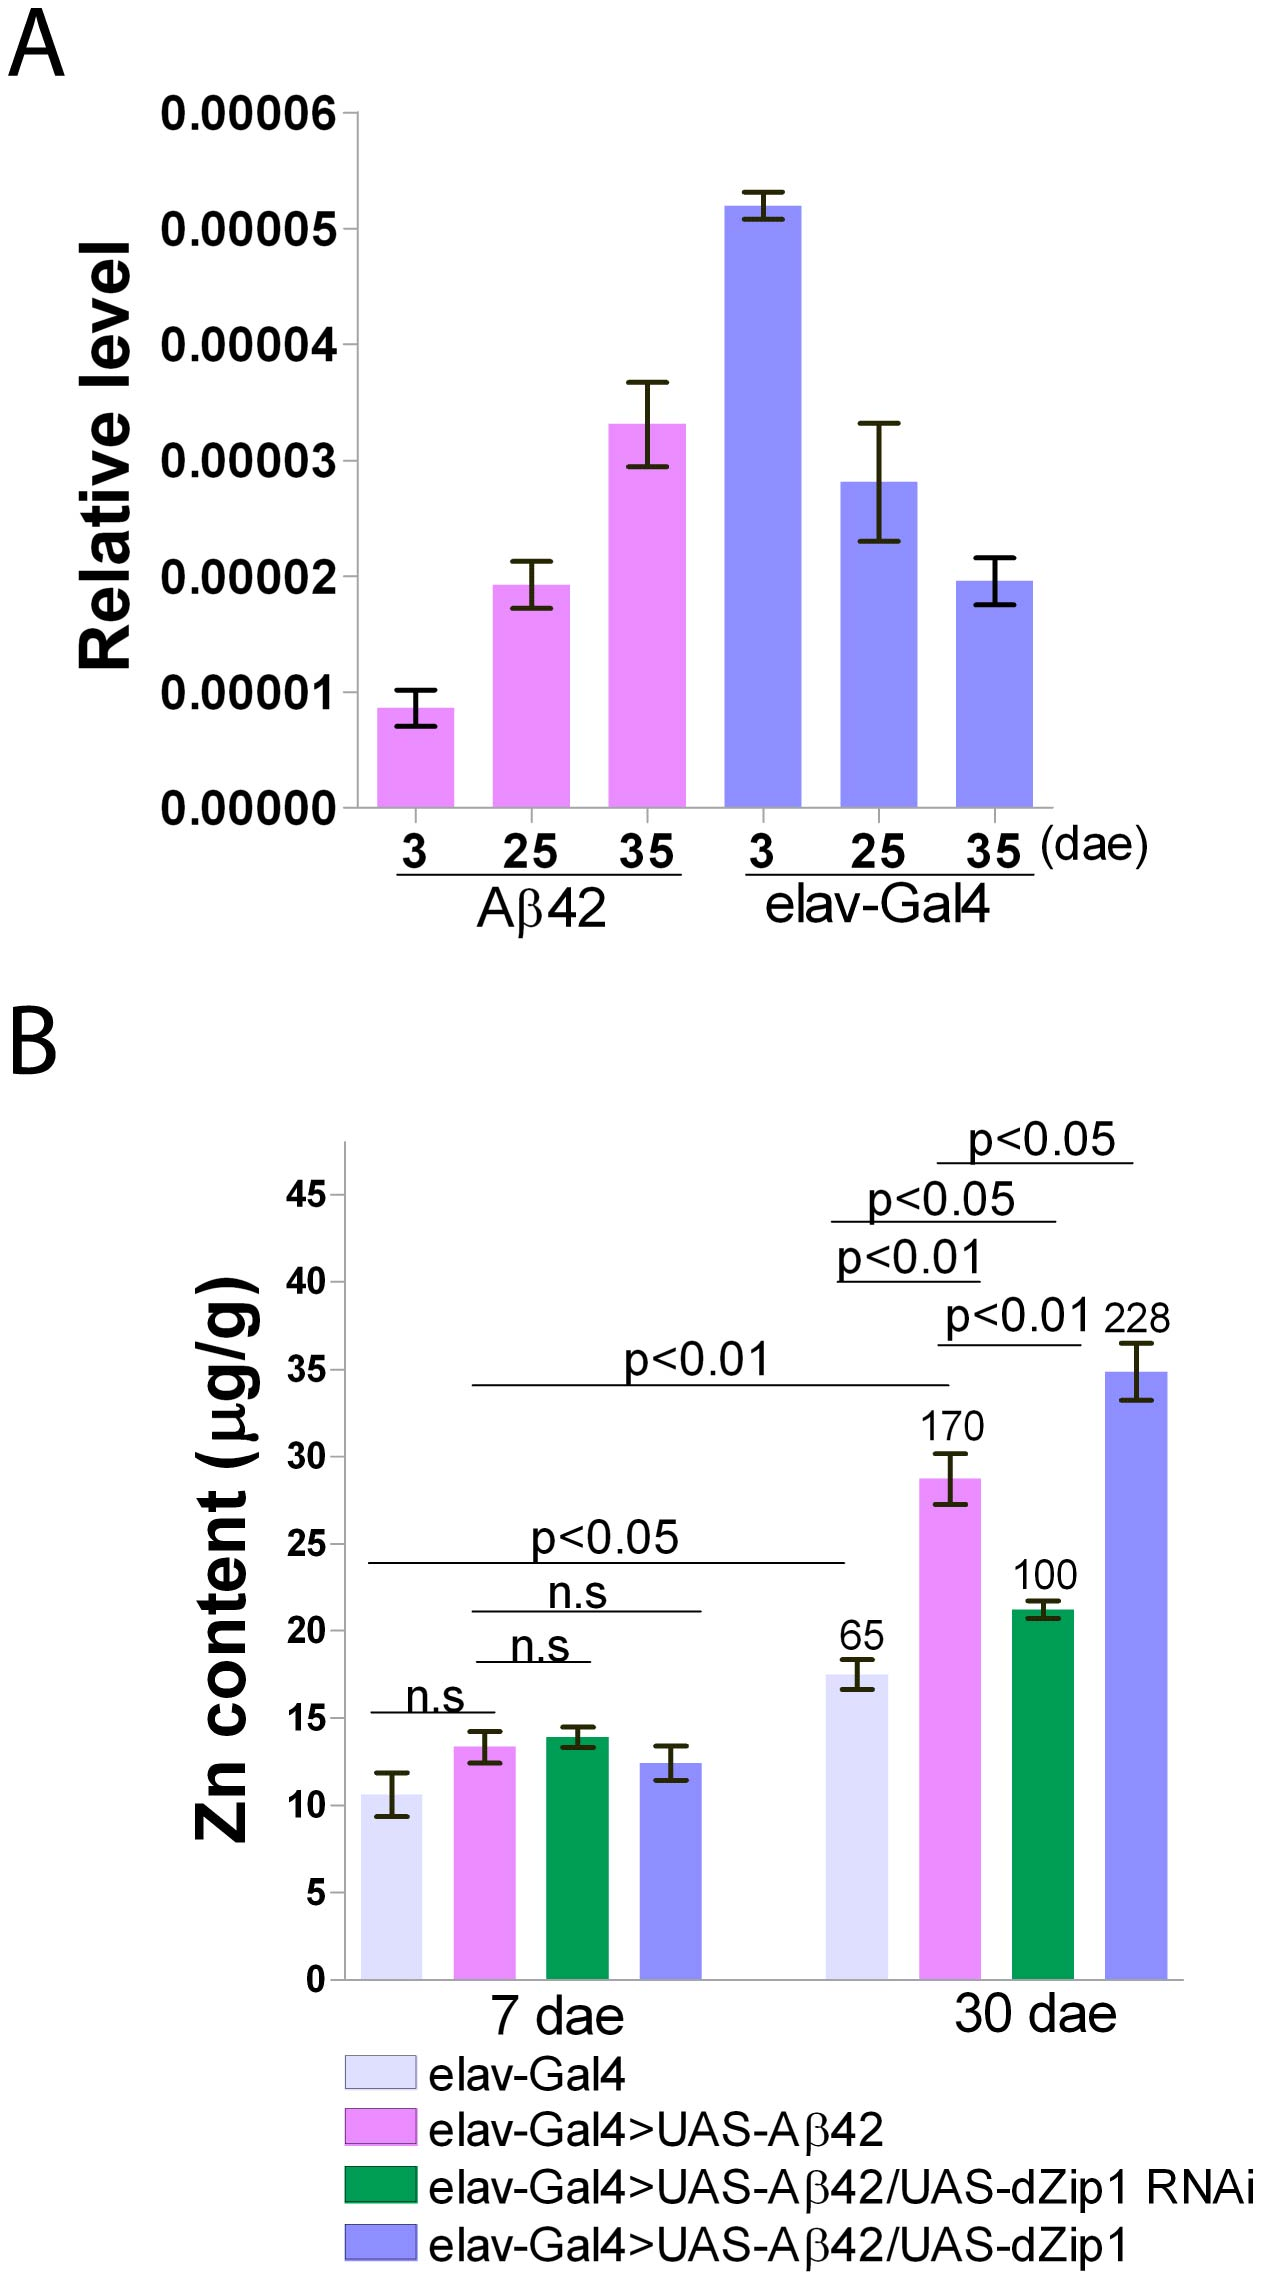 Brain <i>dZip1</i> expression and zinc levels are affected by Aβ42 expression and aging.